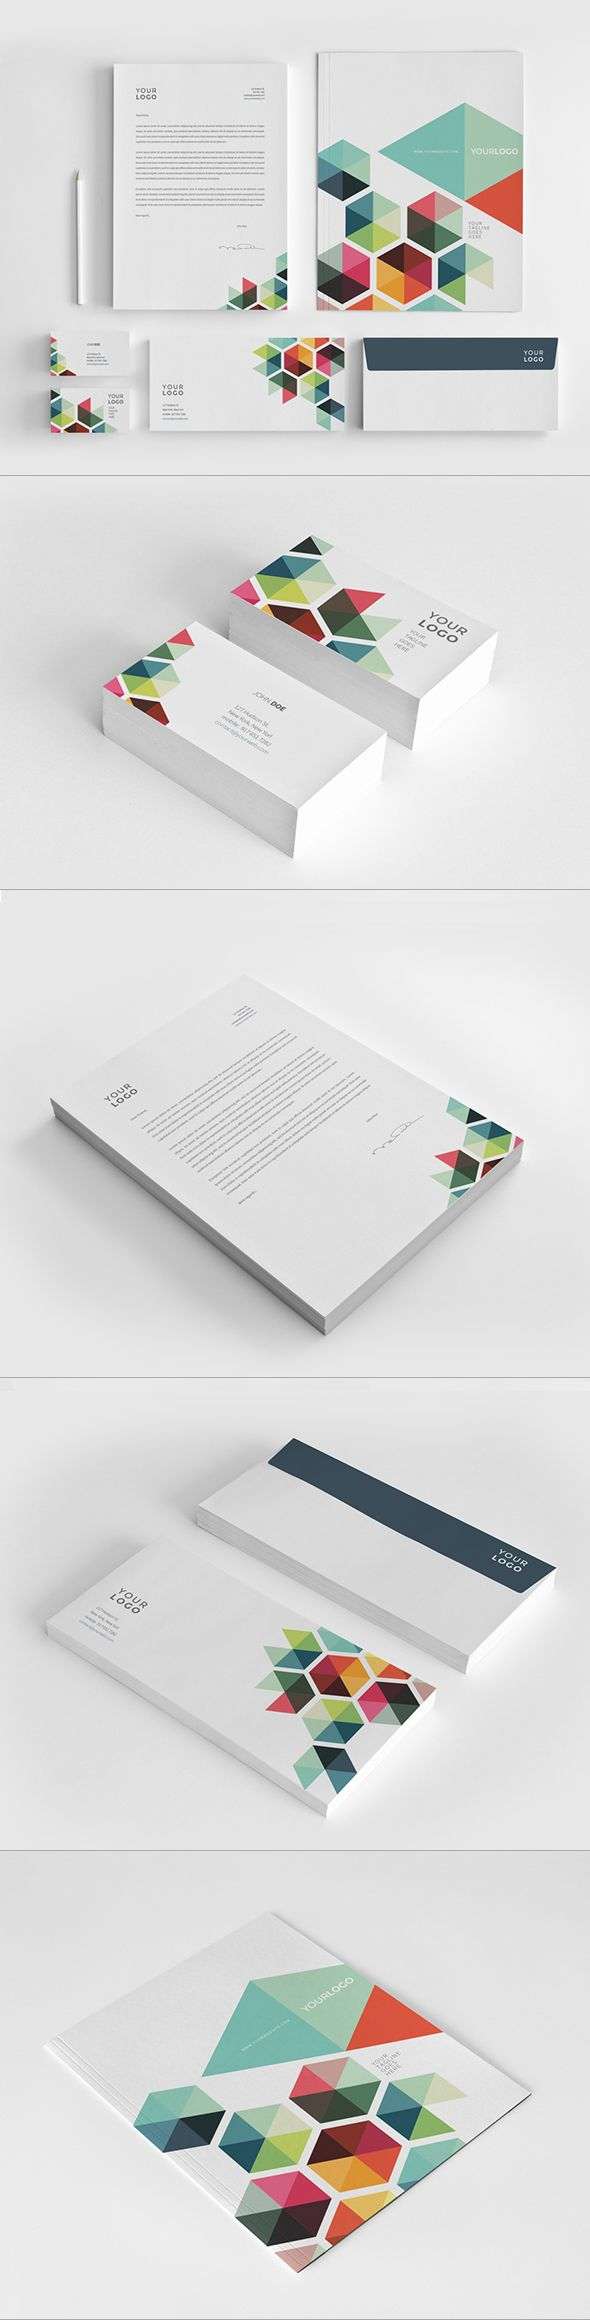 Business Colorful Stationery. Download here: http://graphicriver.net/item/business-colorful-stationery/7717637?ref=abradesign #design #stationery